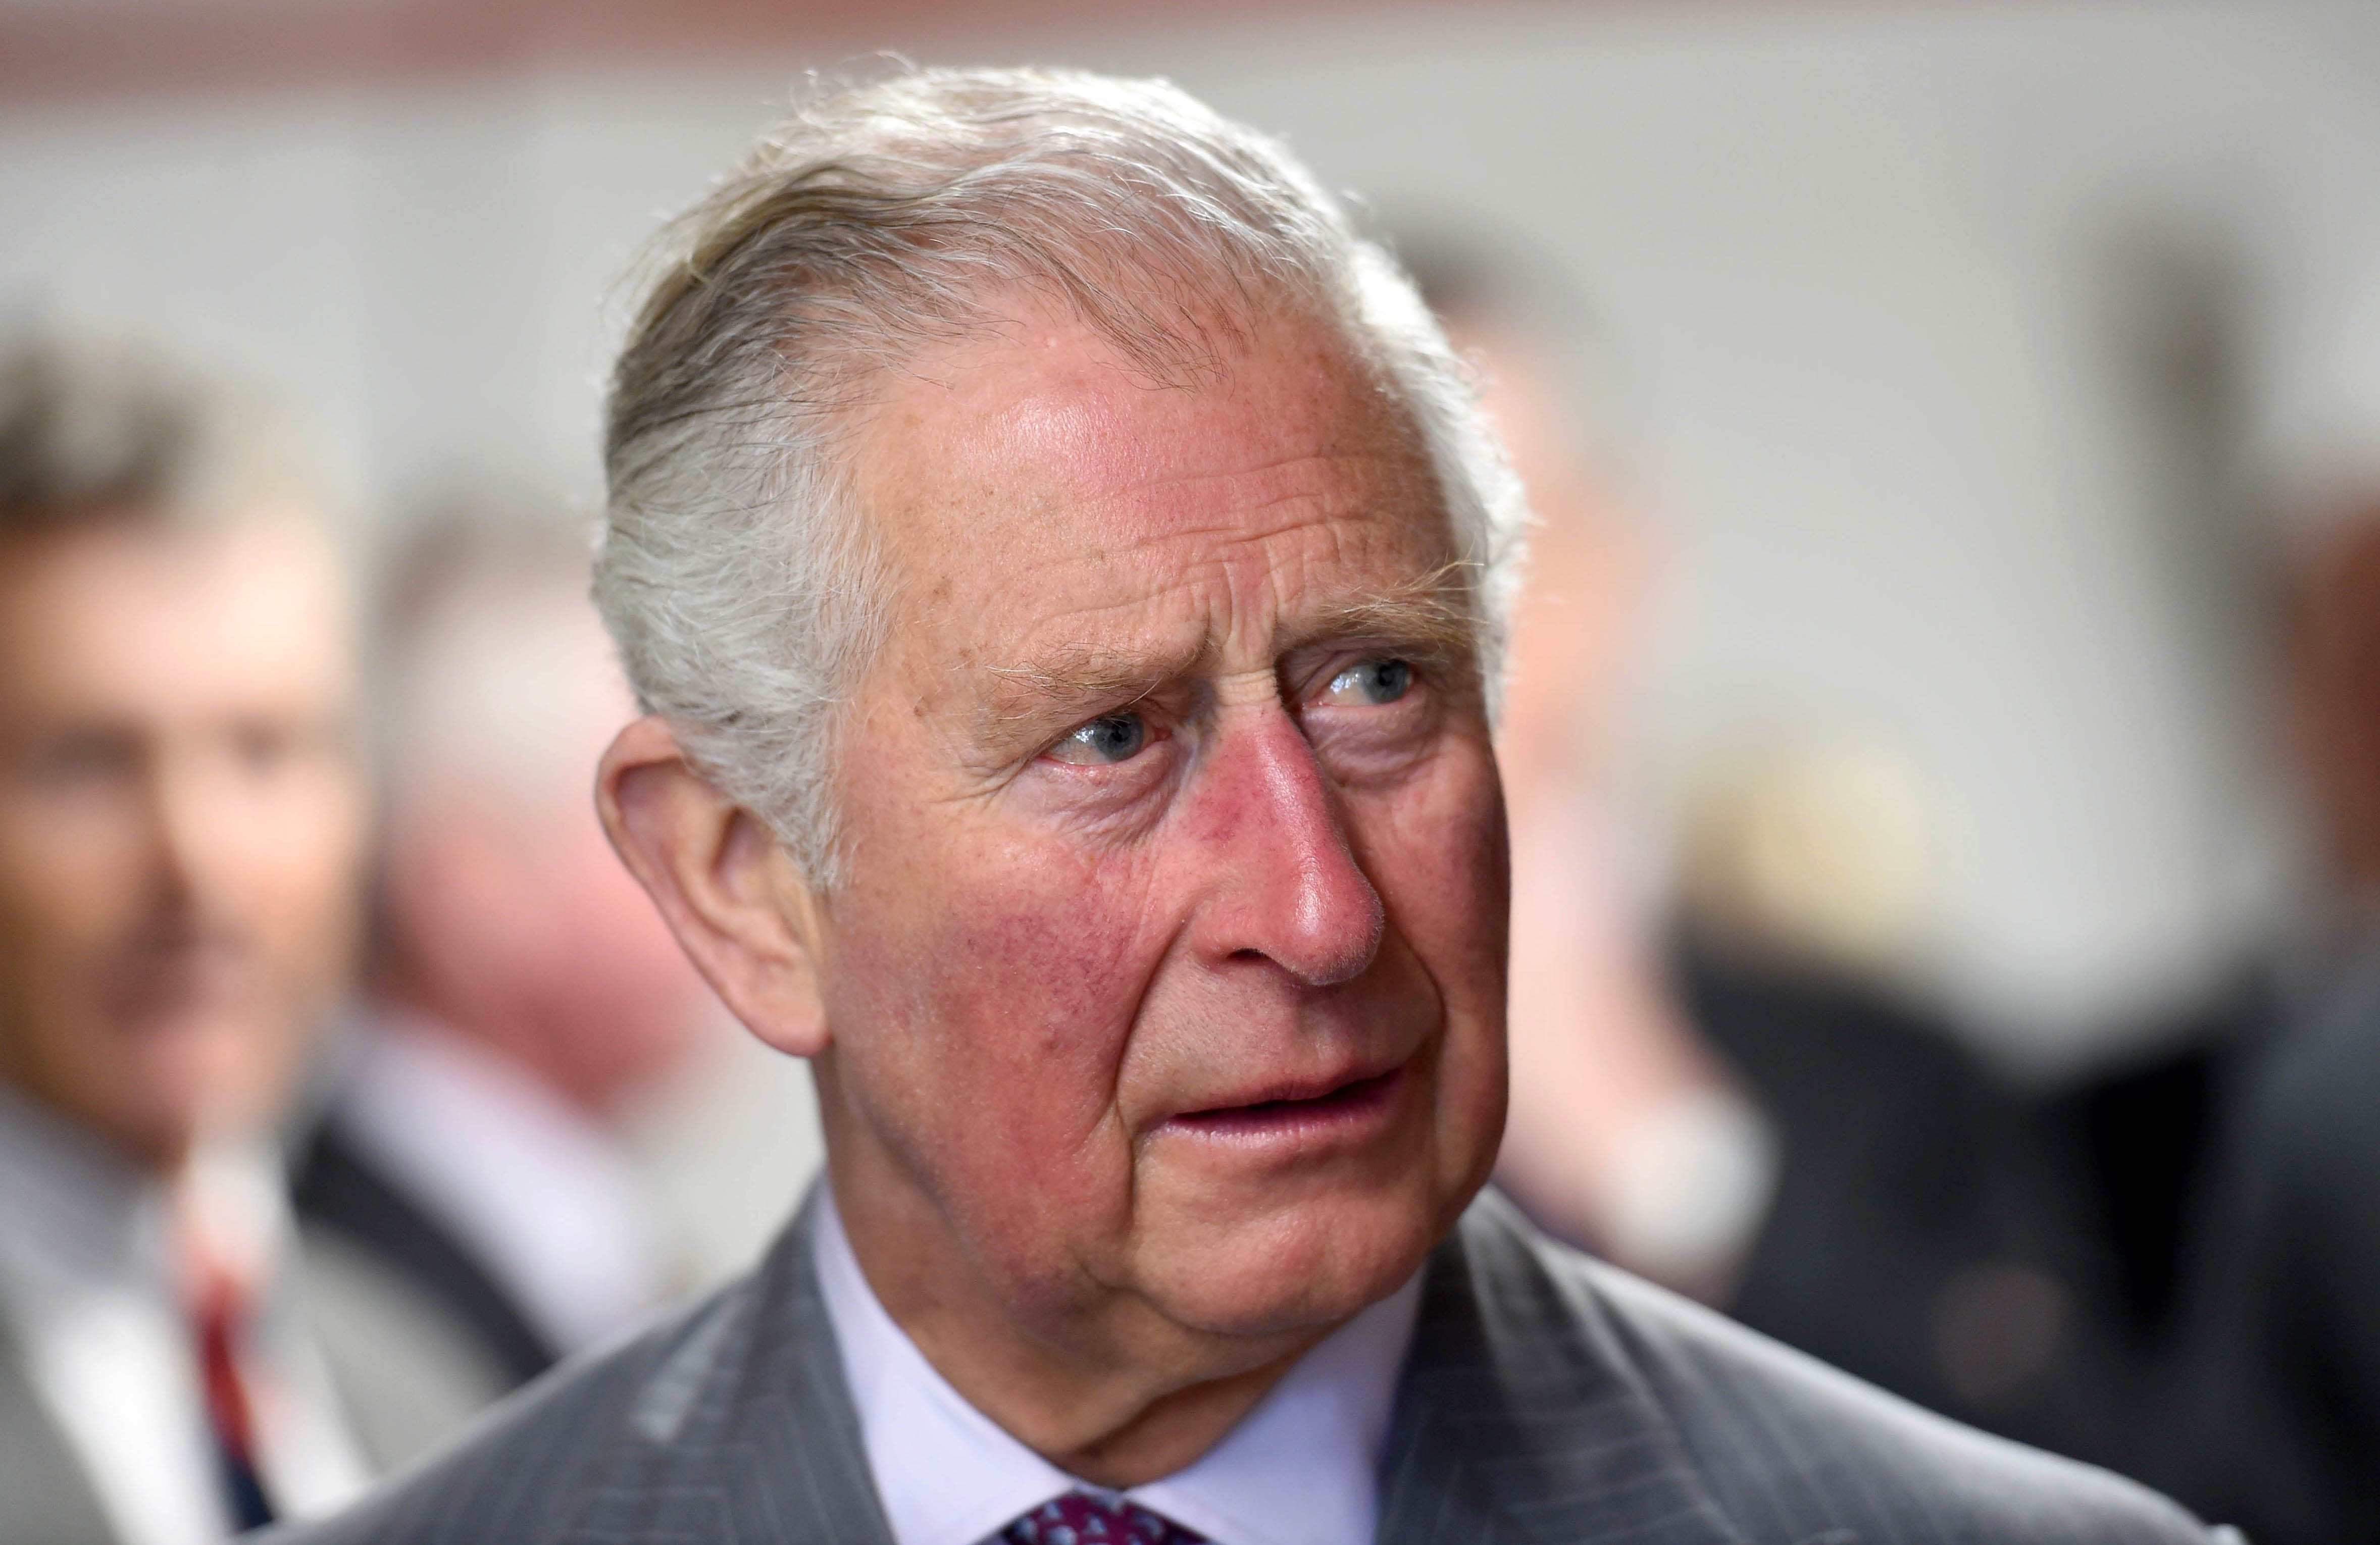 Prince Charles, Prince of Wales makes an official visit to St Austell Brewery on April 05, 2019, in St Austell, England. | Photo: Getty Images.